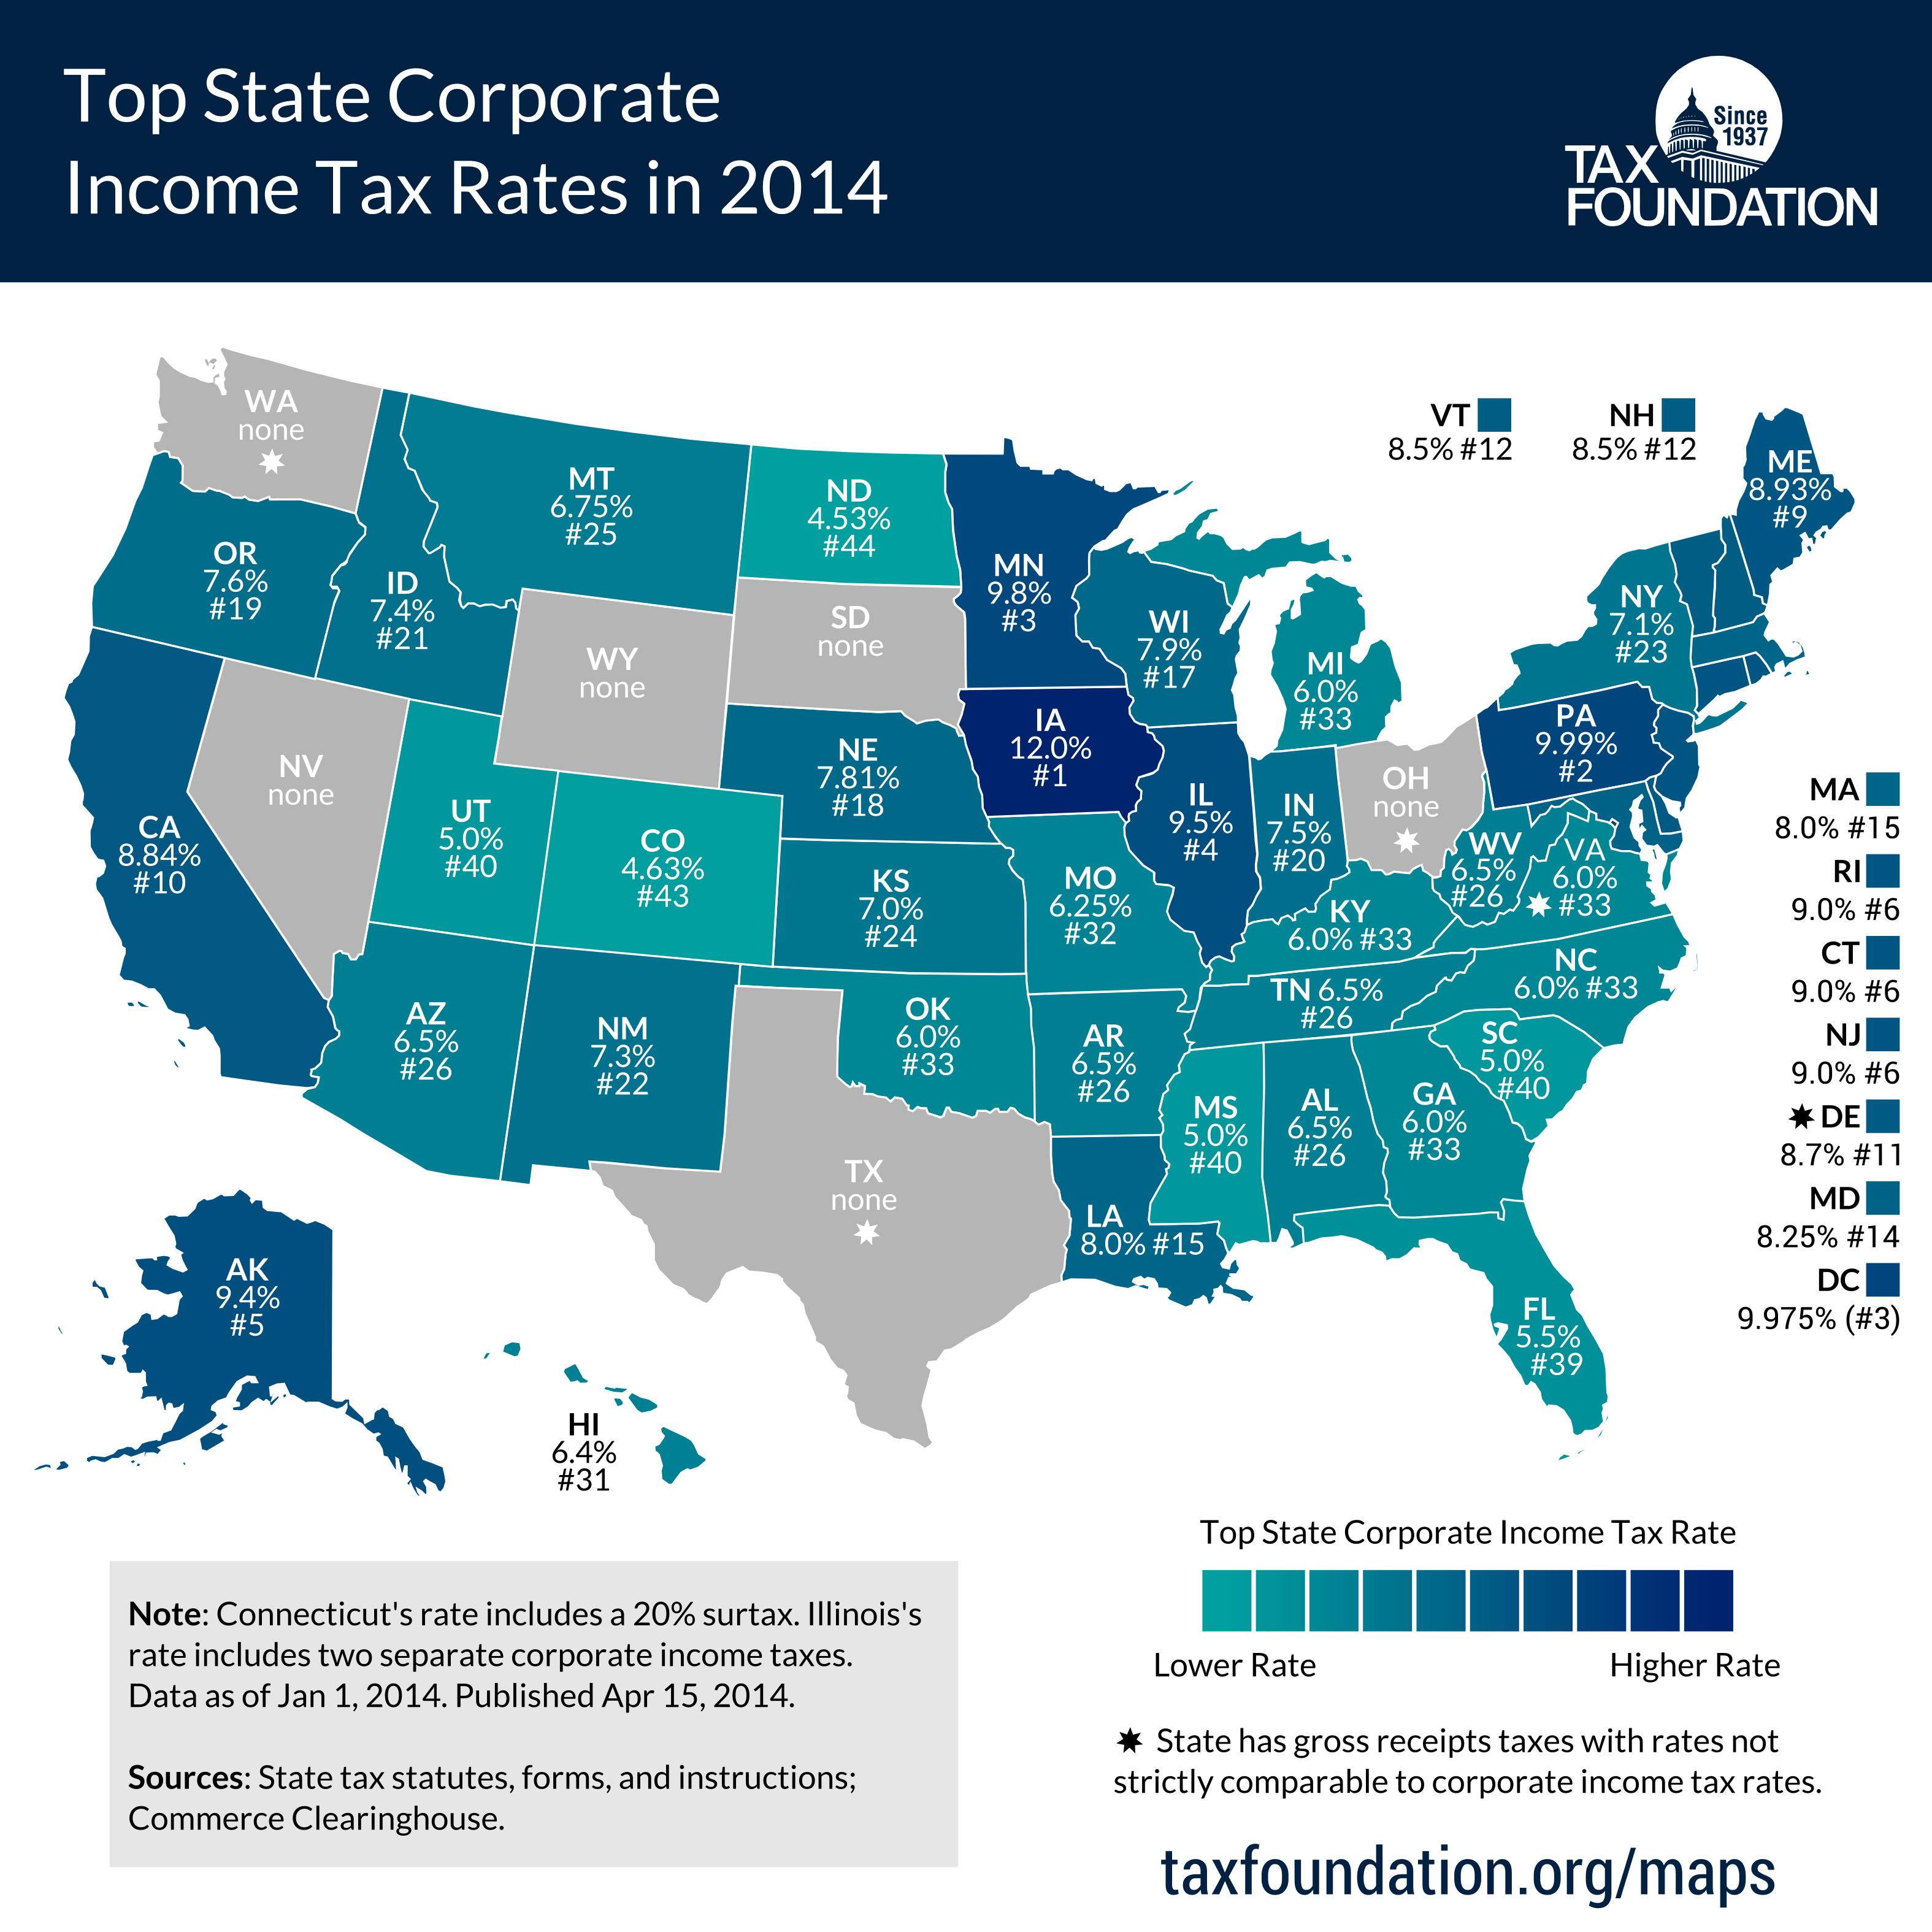 Colorado Income Tax Rate: Top State Corporate Income Tax Rates In 2014